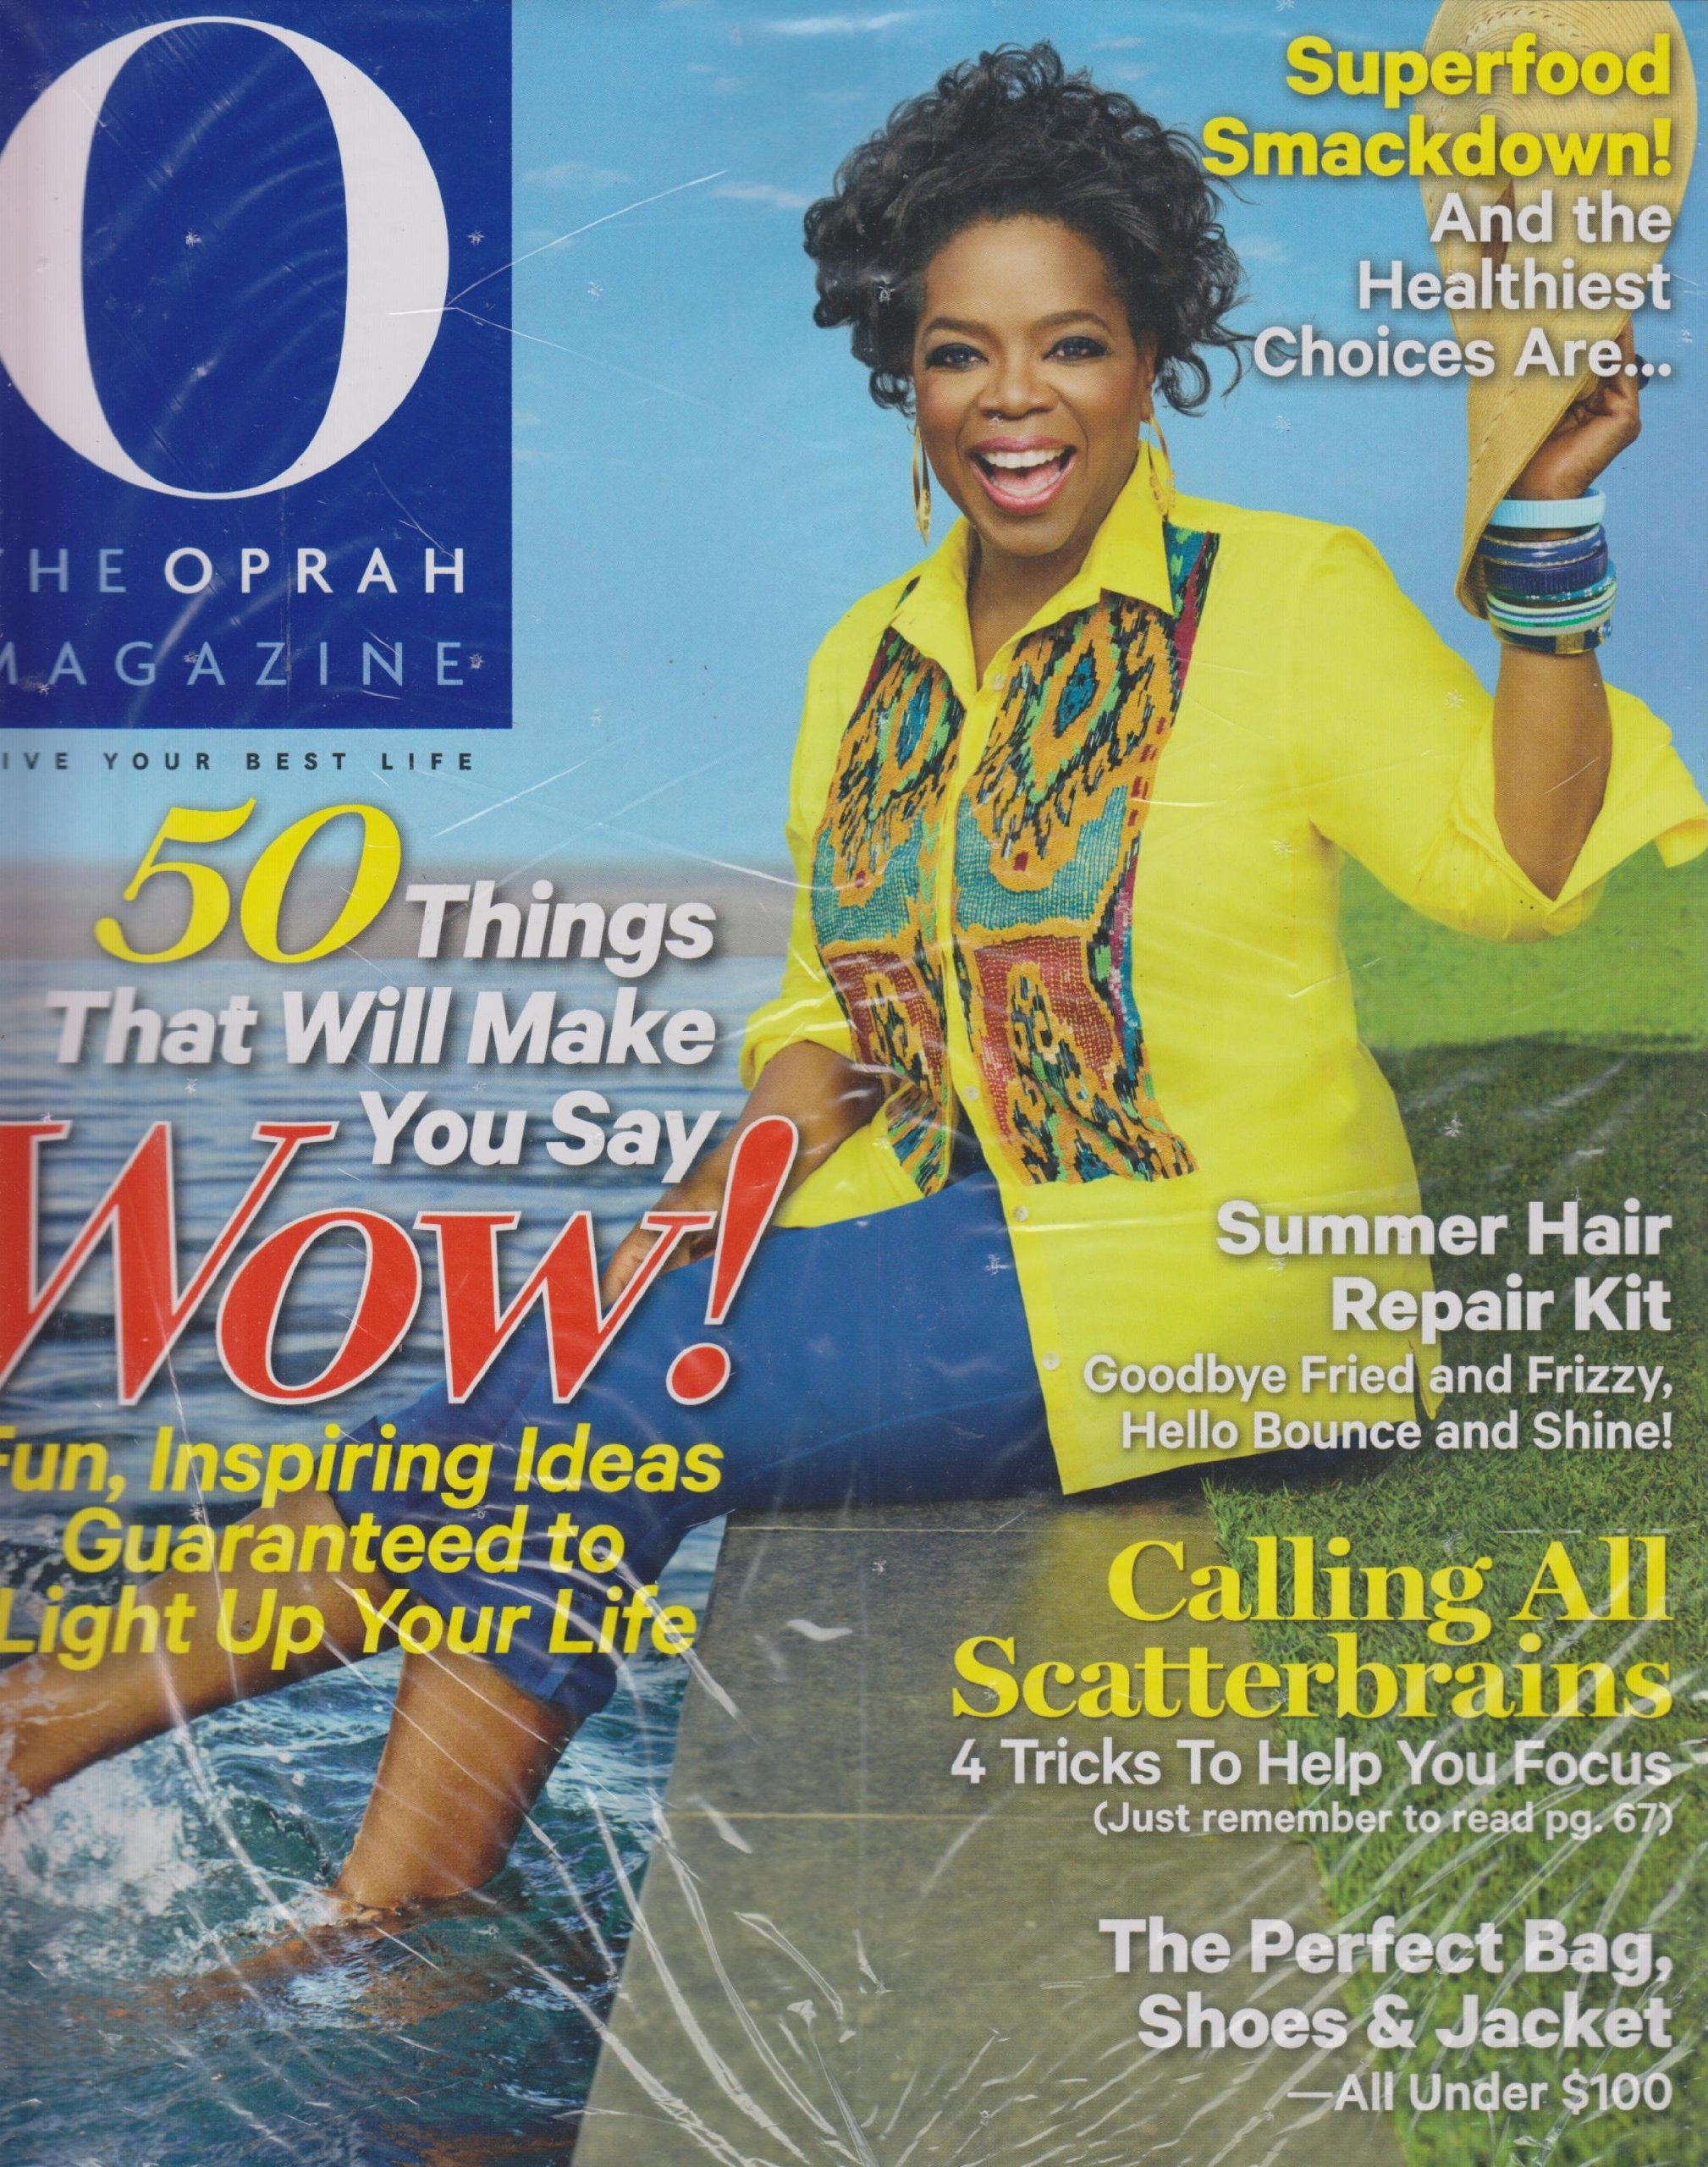 Download O, August 2013, Volume 14, Number 8 (50 Things That Will Make You Say Wow! Fun, Inspiring Ideas Guaranteed to Light up Your Life) ebook